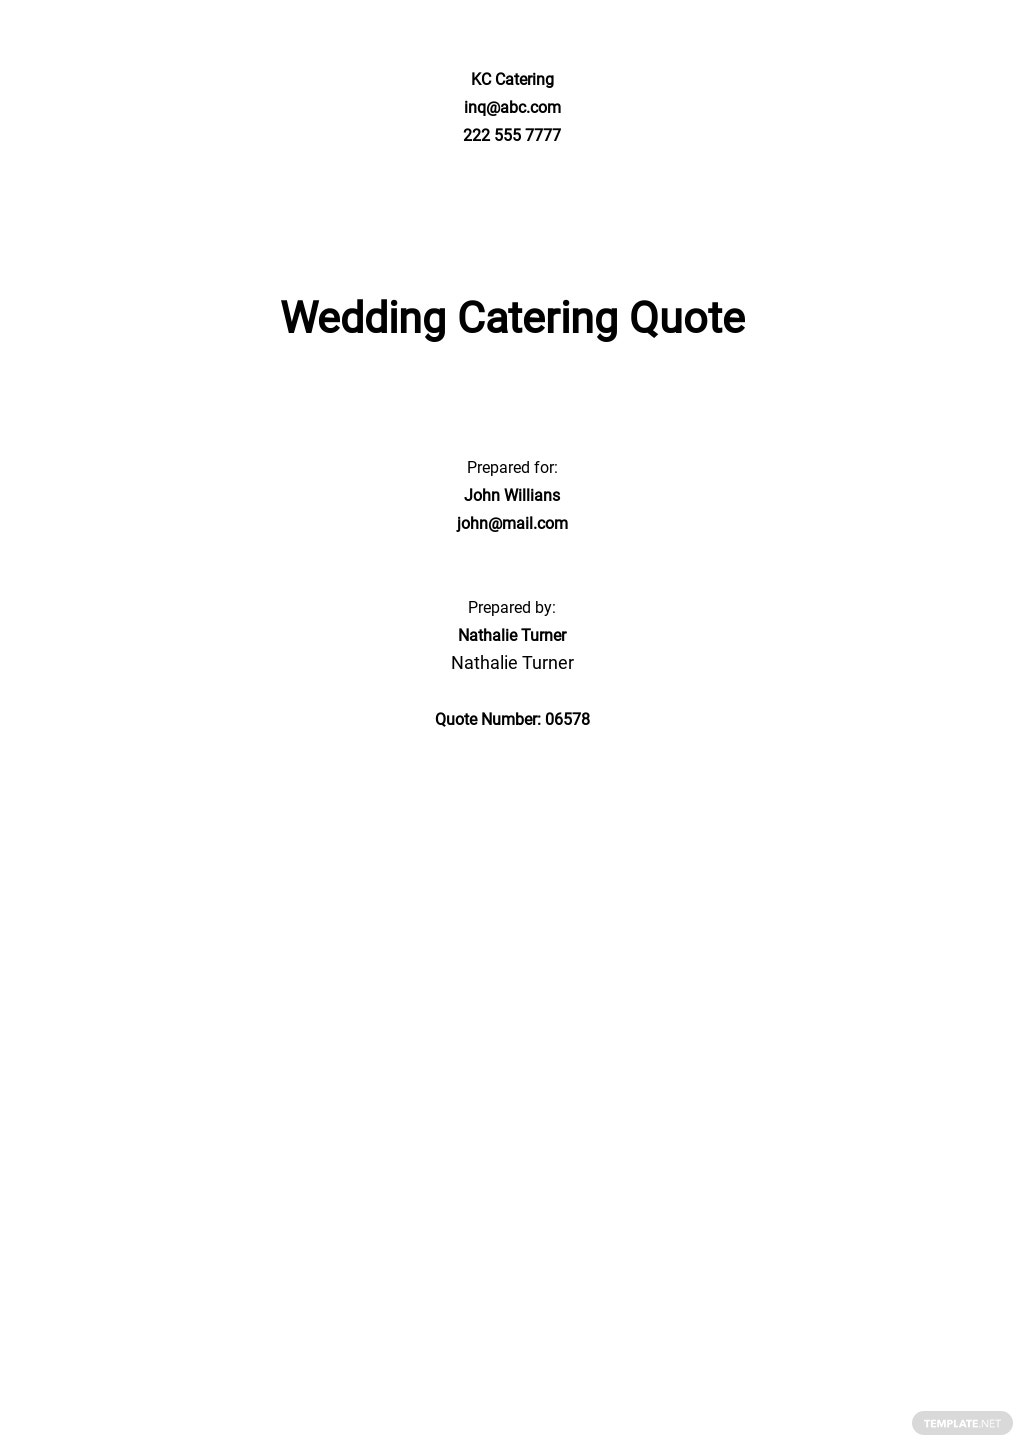 Wedding Catering Quote Template